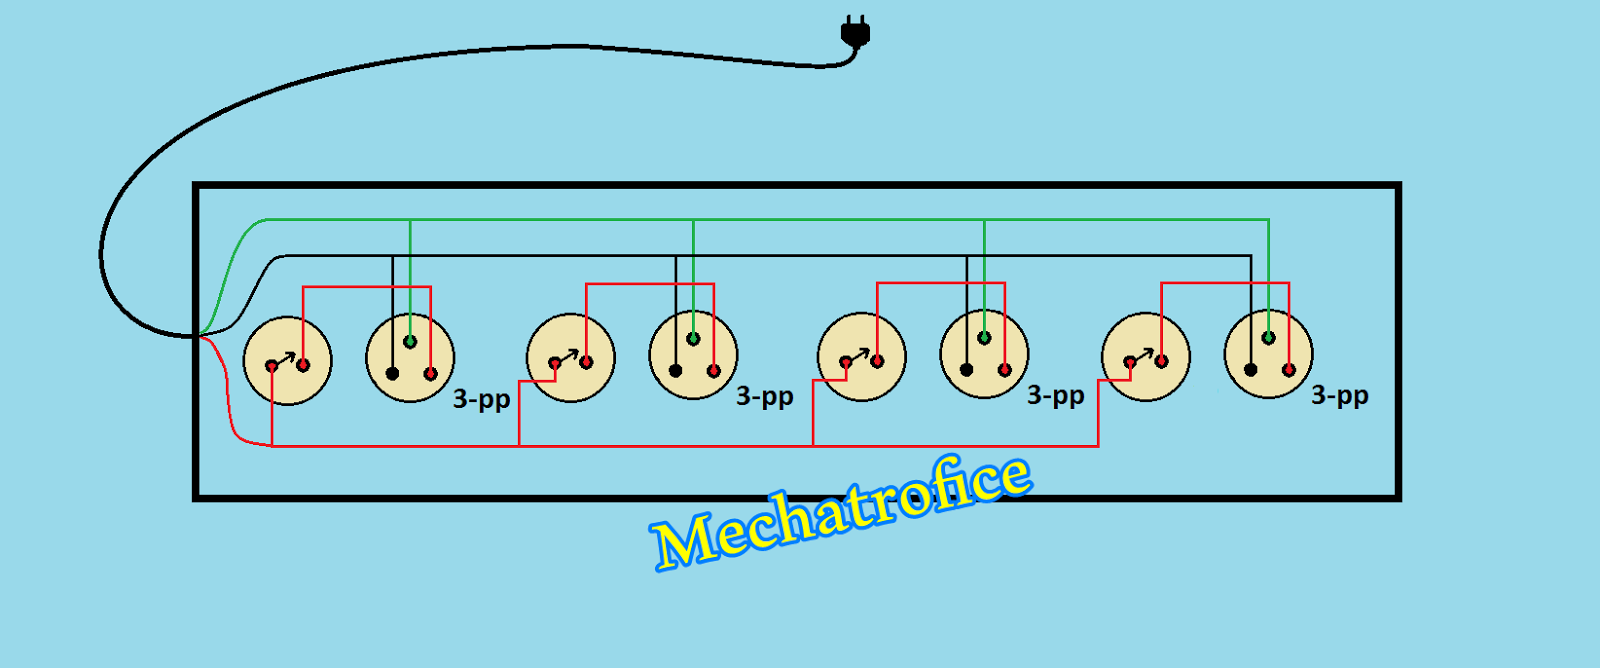 extension+cord+extension+real+circuit+wiring+diagram extension cord wiring diagram mechatrofice extension cord wiring diagram at bayanpartner.co